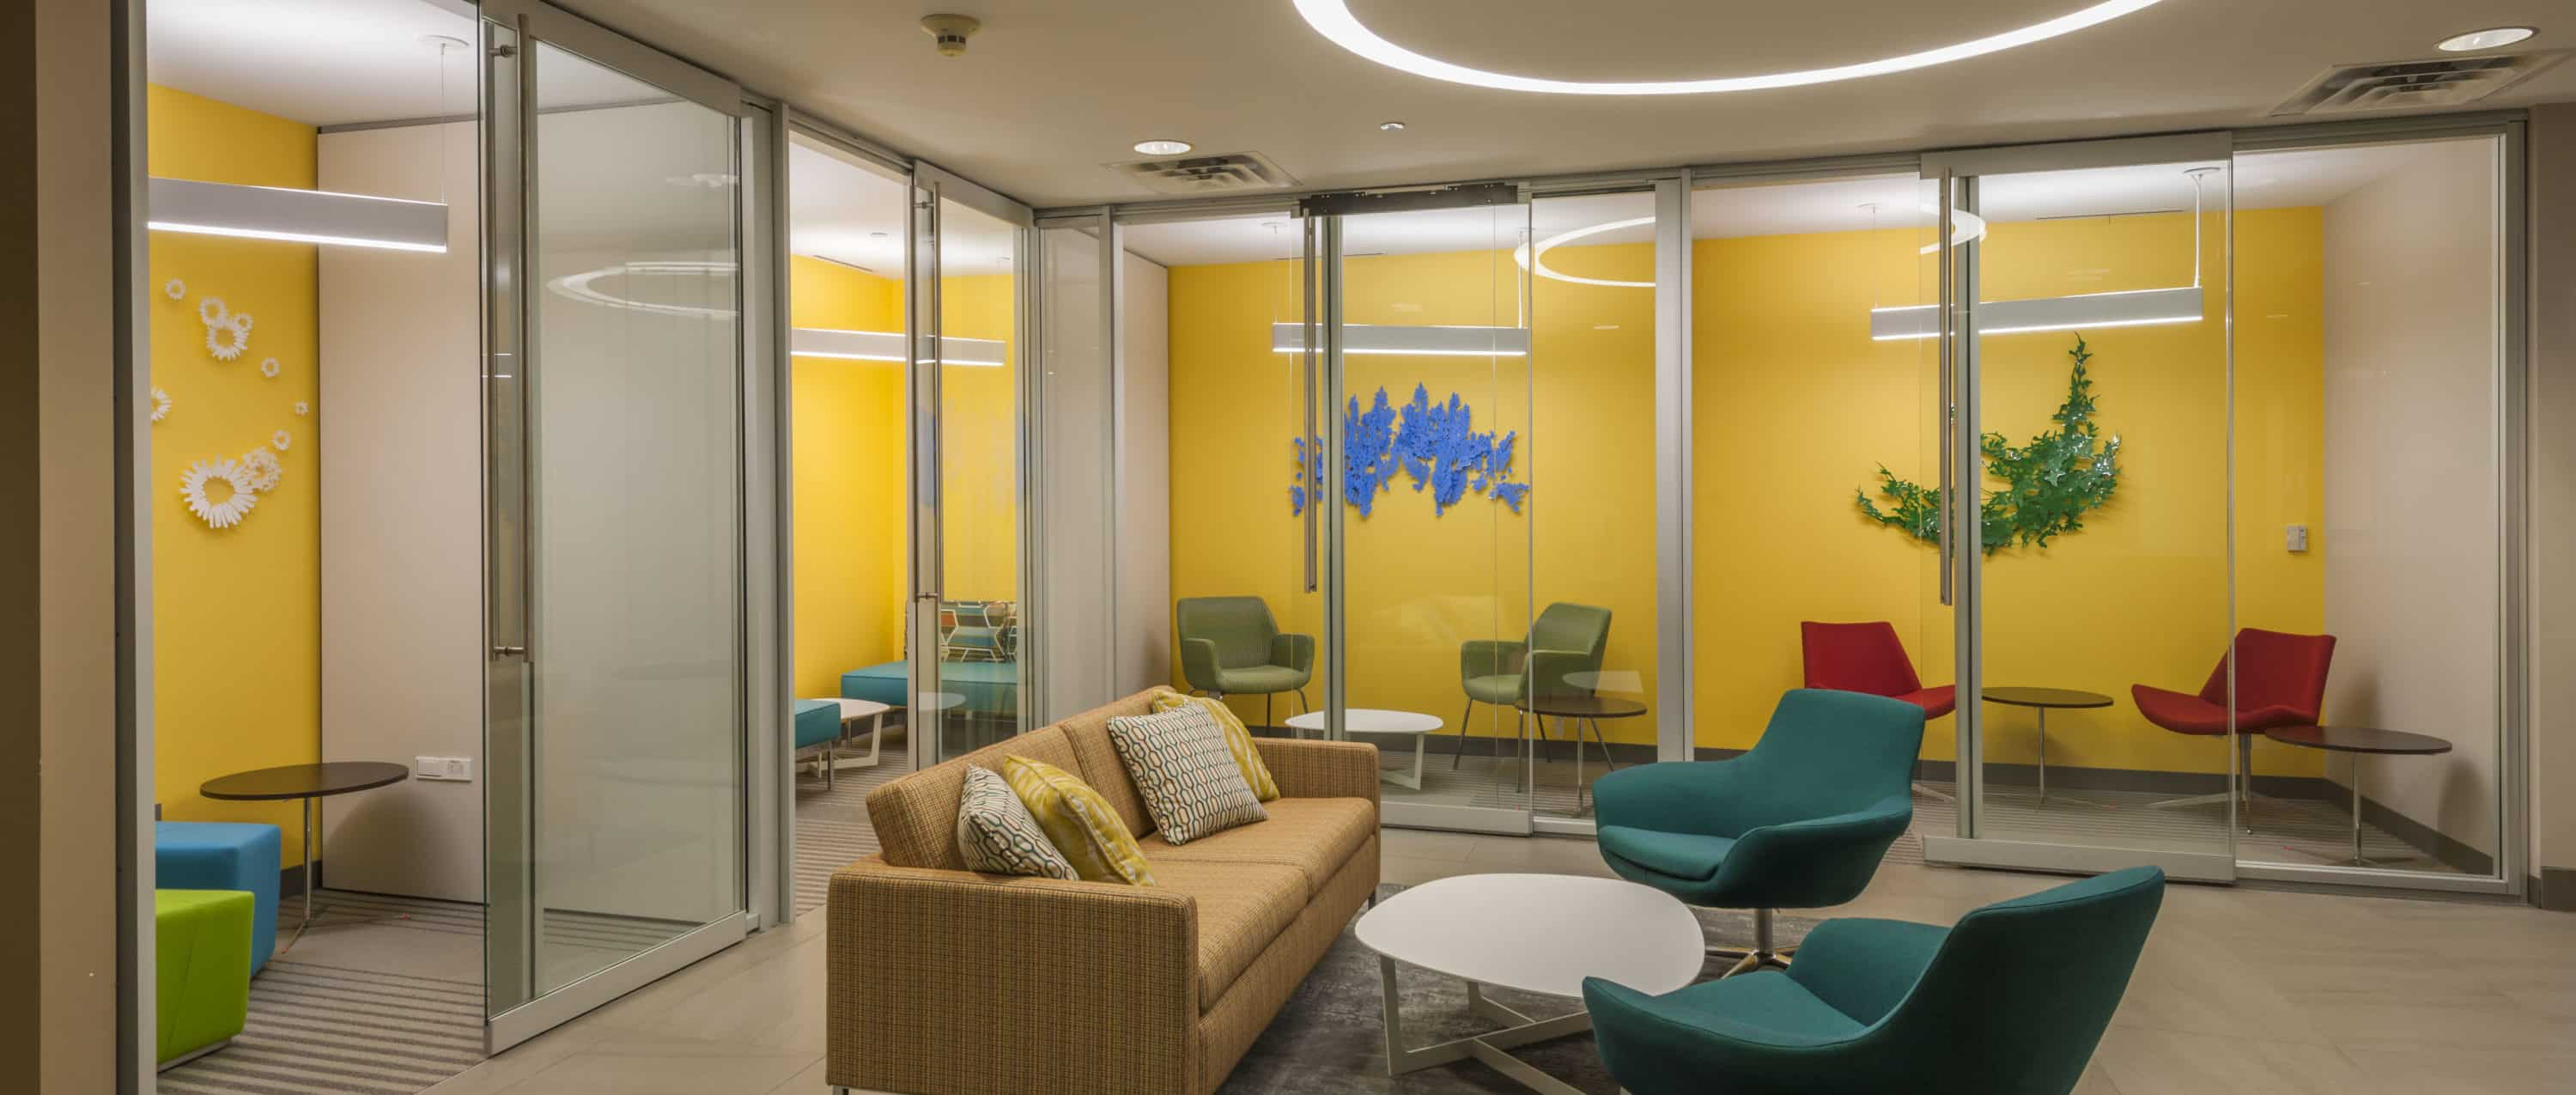 Lobby at 7700 Parmer Office Campus in Austin, Texas